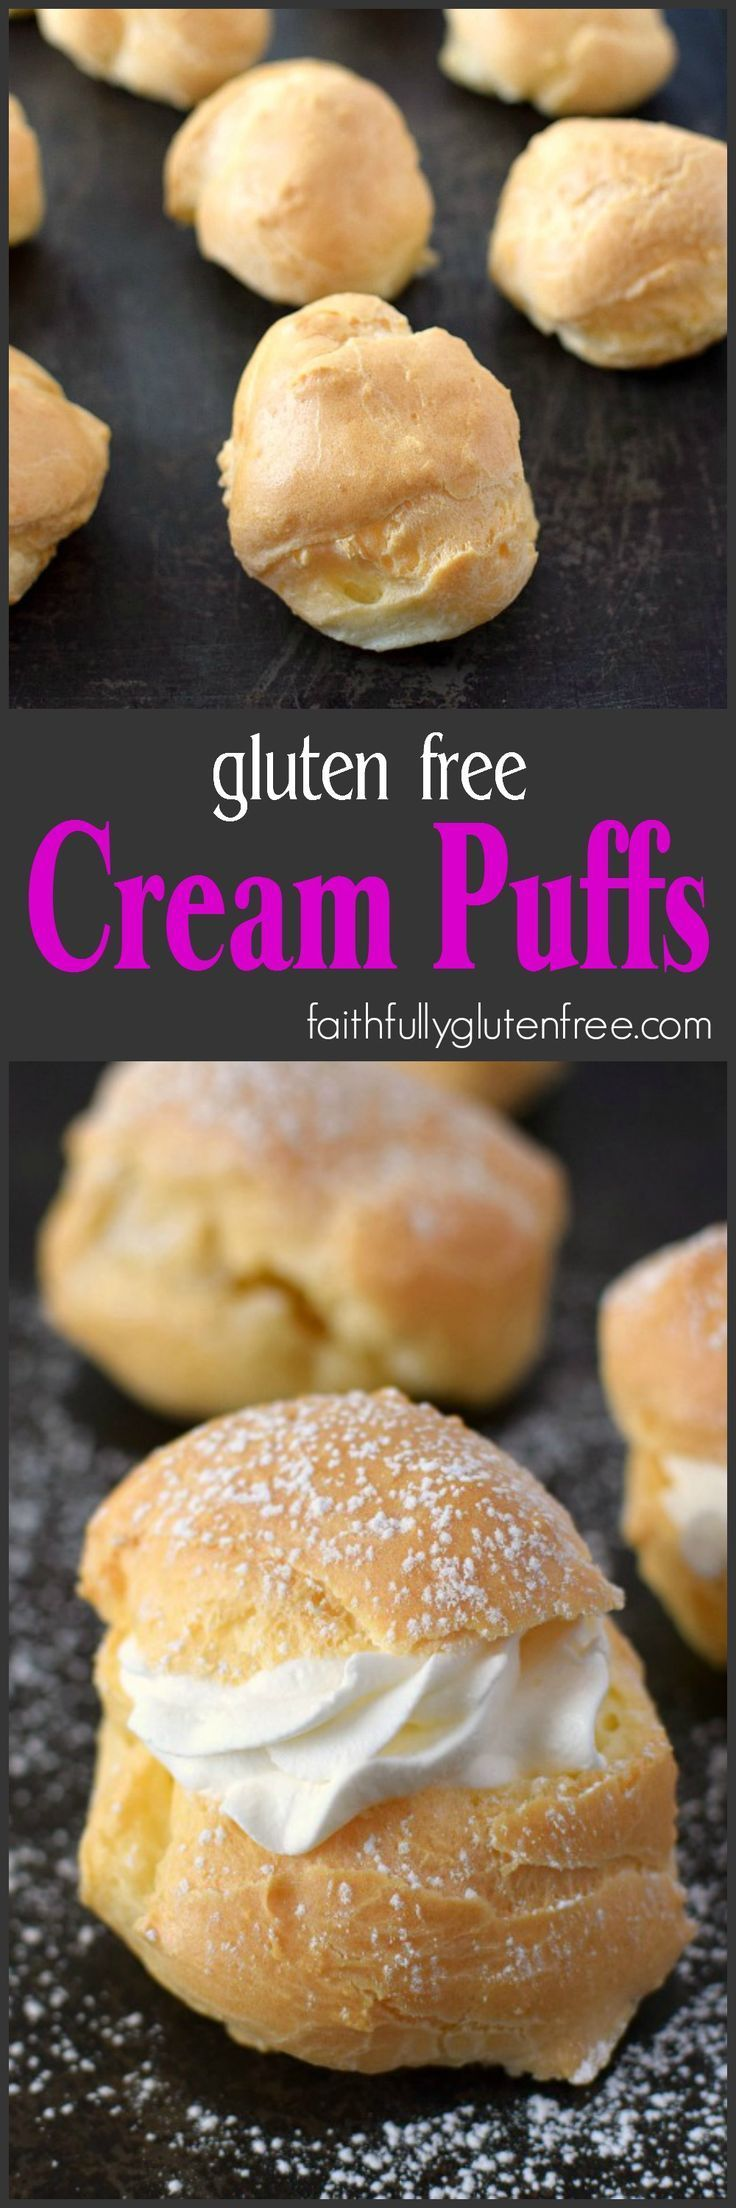 What's your Filling? These Gluten Free Cream Puffs are perfect sweet or savory fillings!